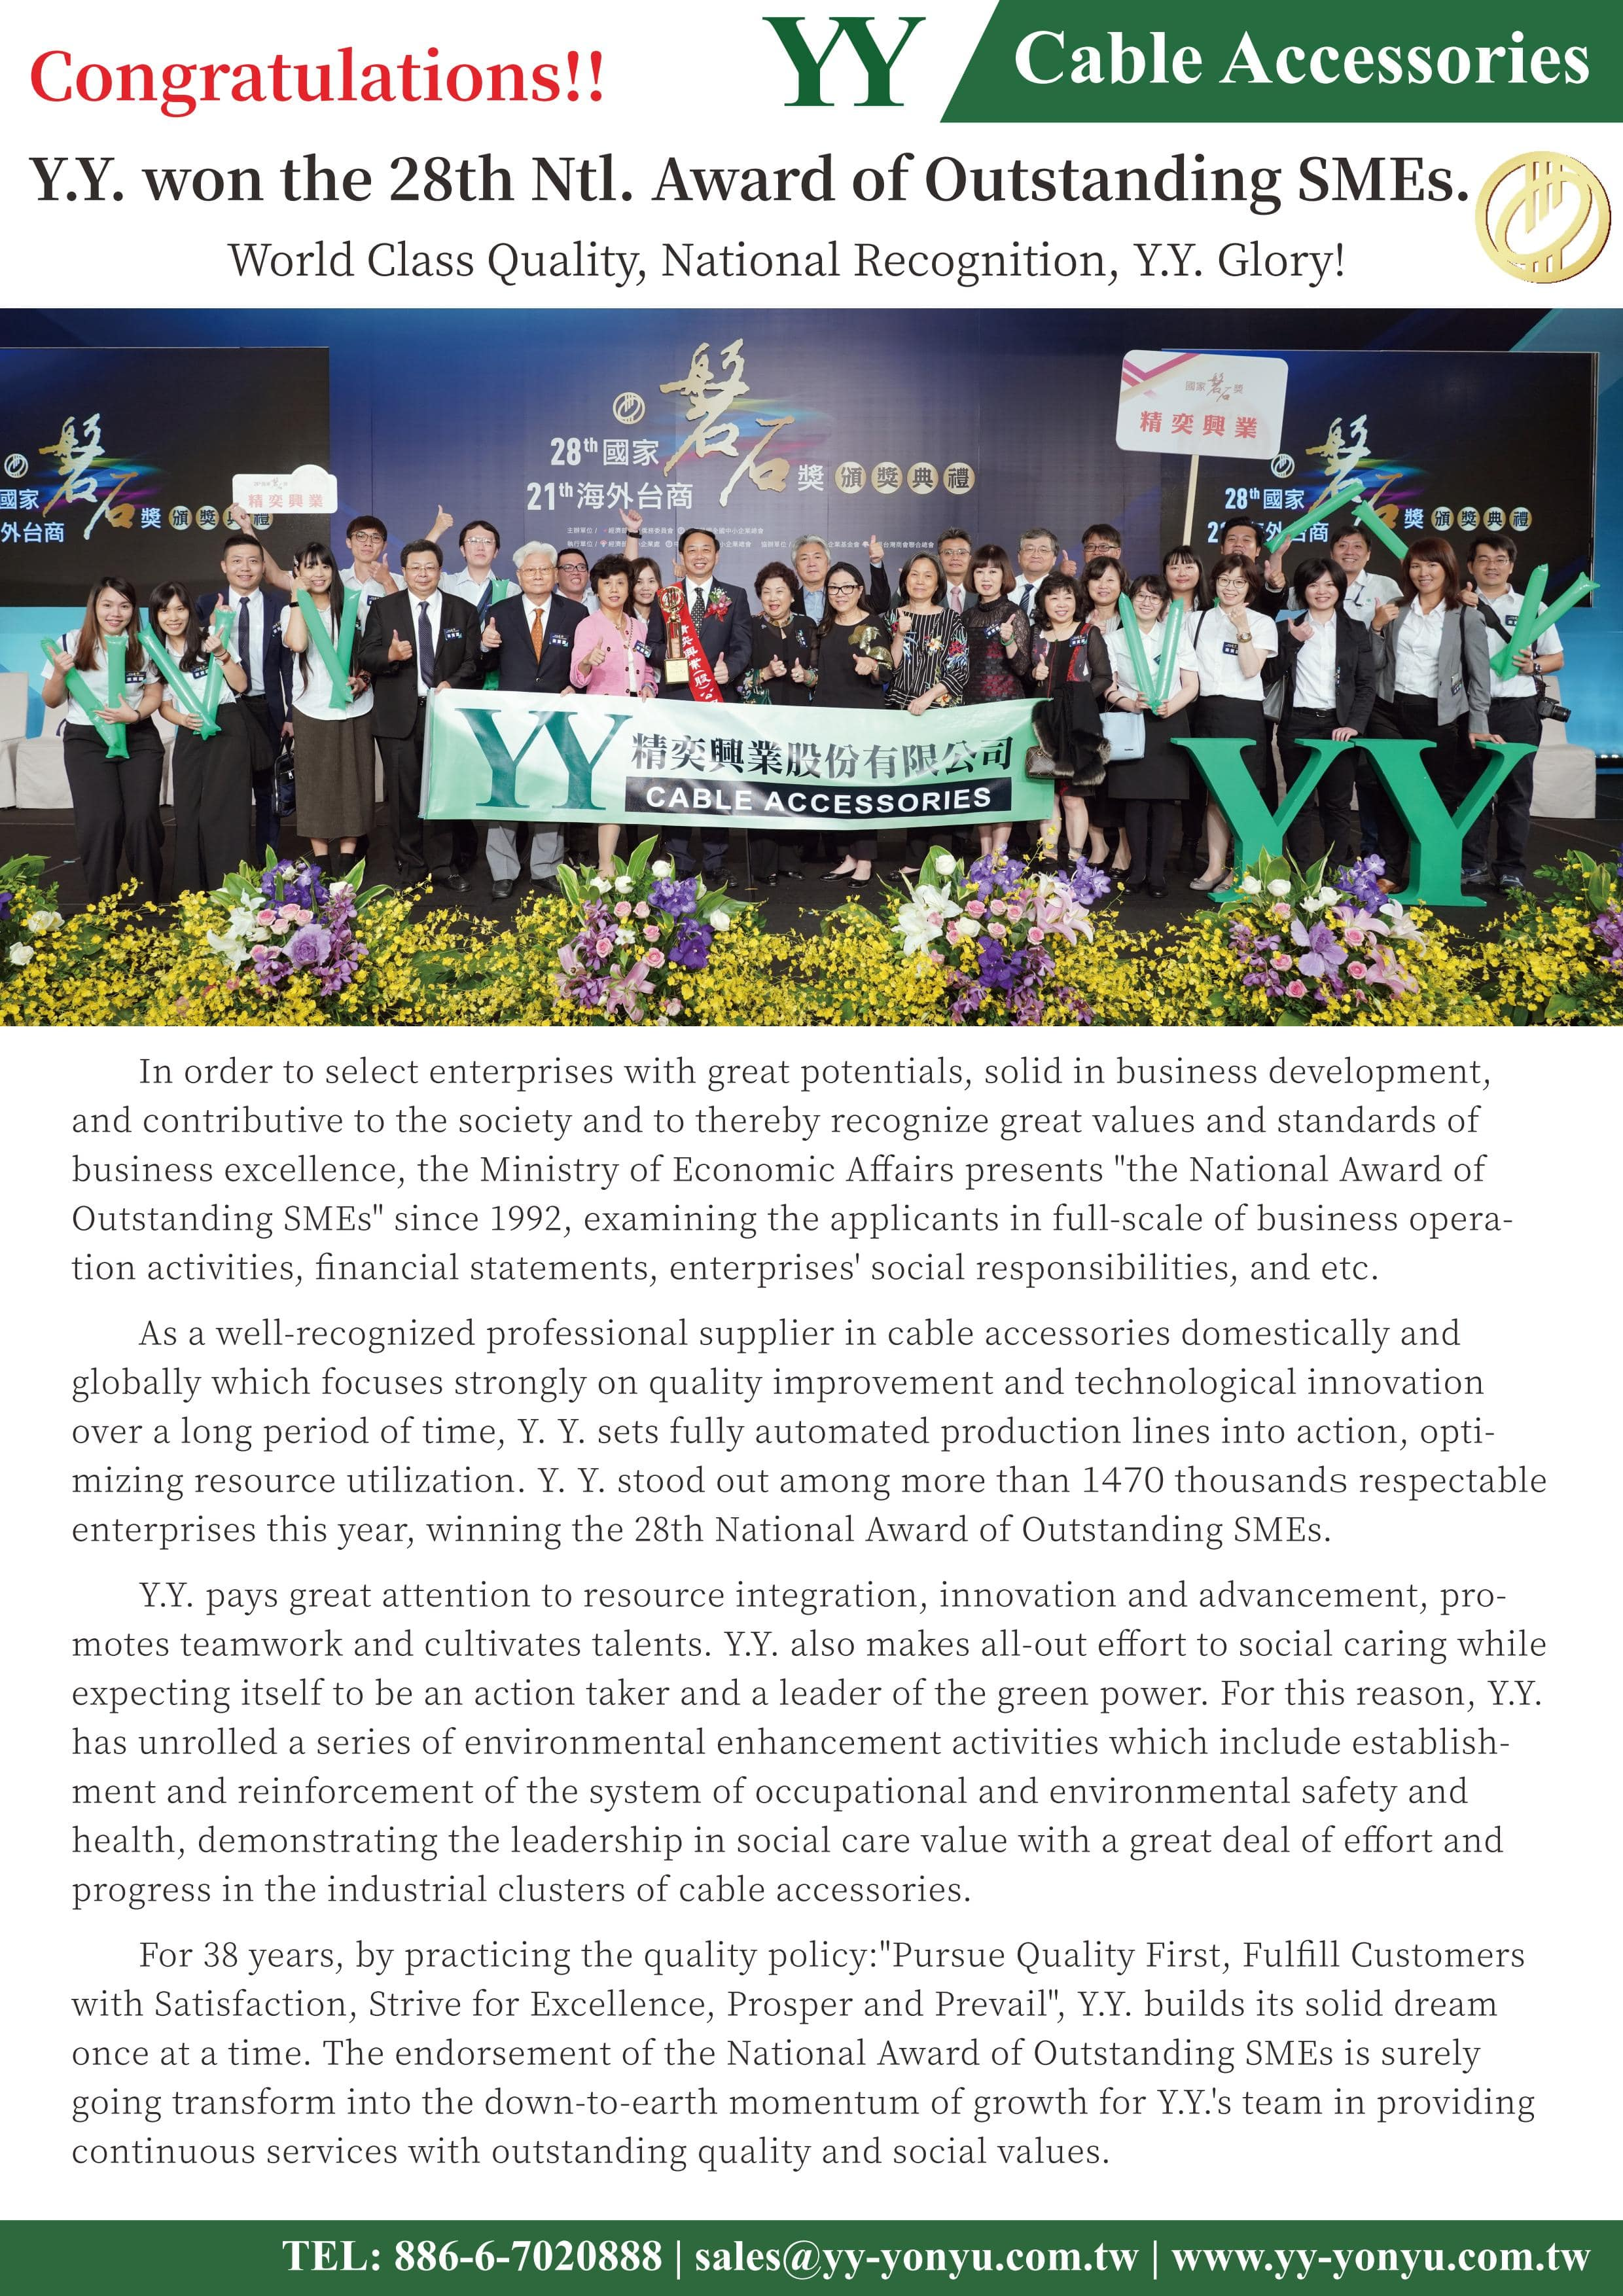 Y.Y. won the 28th National Award of Outstanding SMEs.